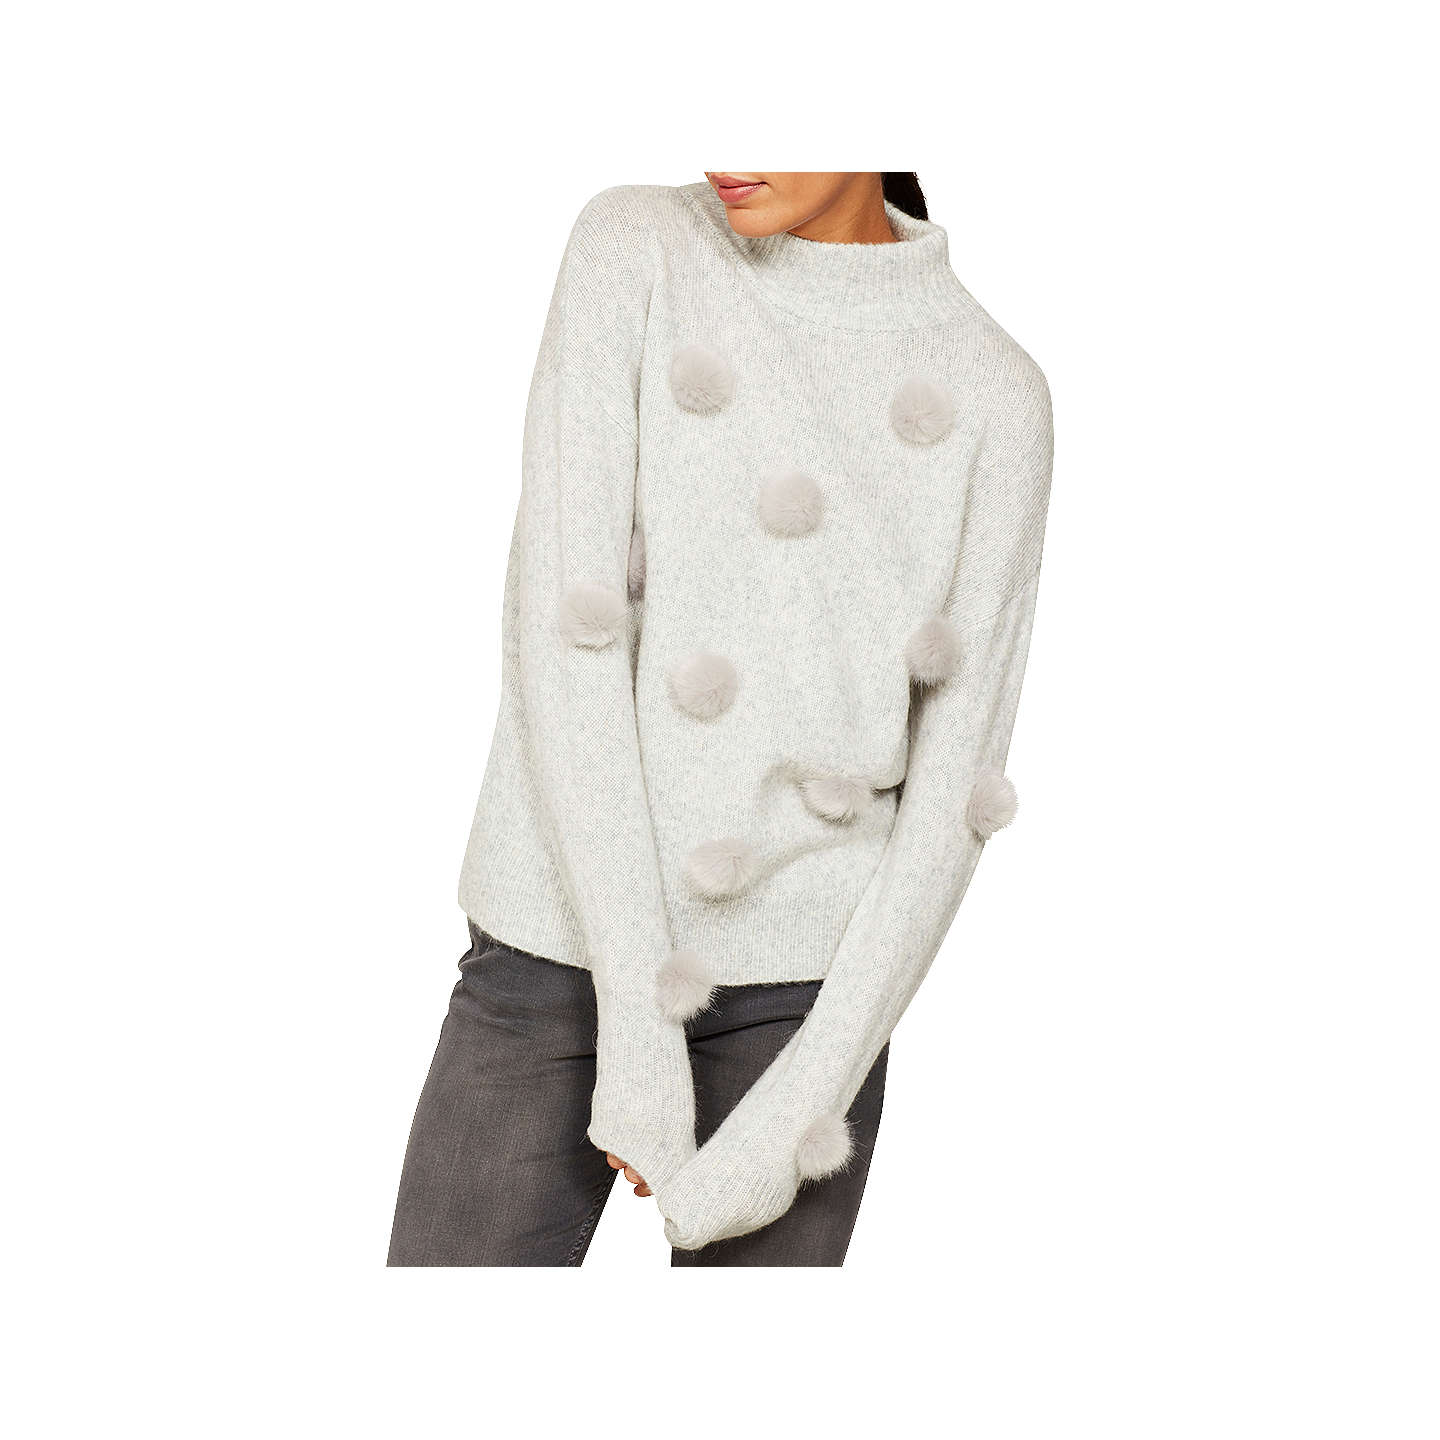 BuyMint Velvet Statement Pom Pom Knit Jumper, Grey, 6 Online at johnlewis.com